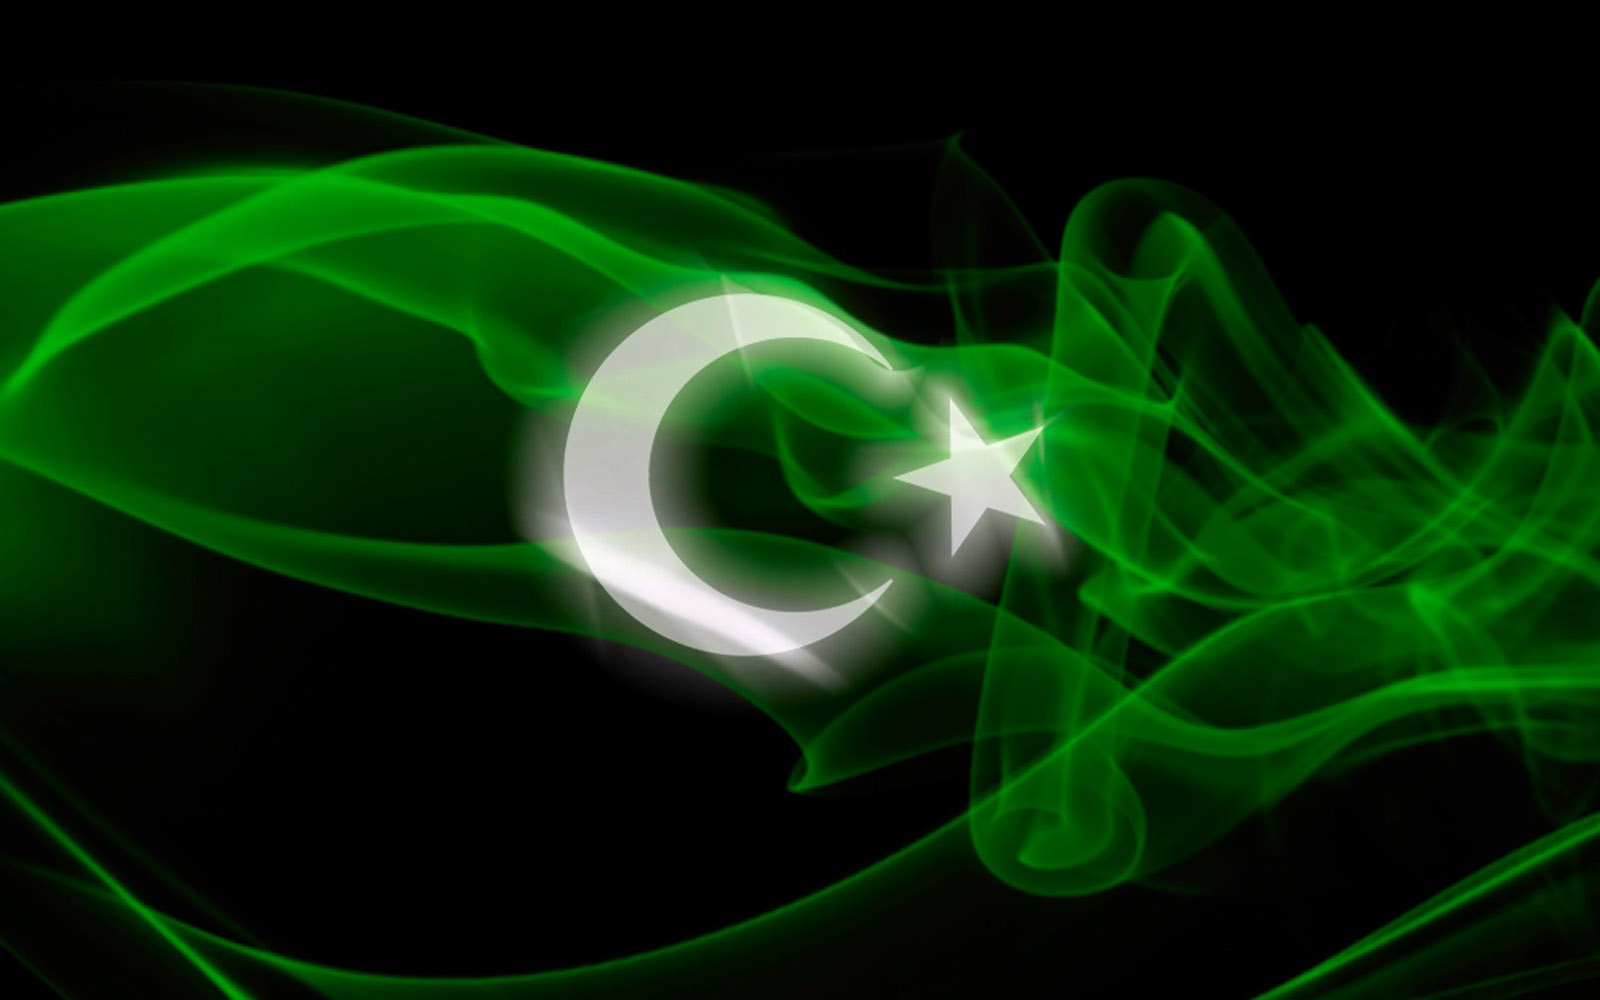 flag wallpapers pak flag wallpapers pakistan beautiful flag wallpapers 1600x1000